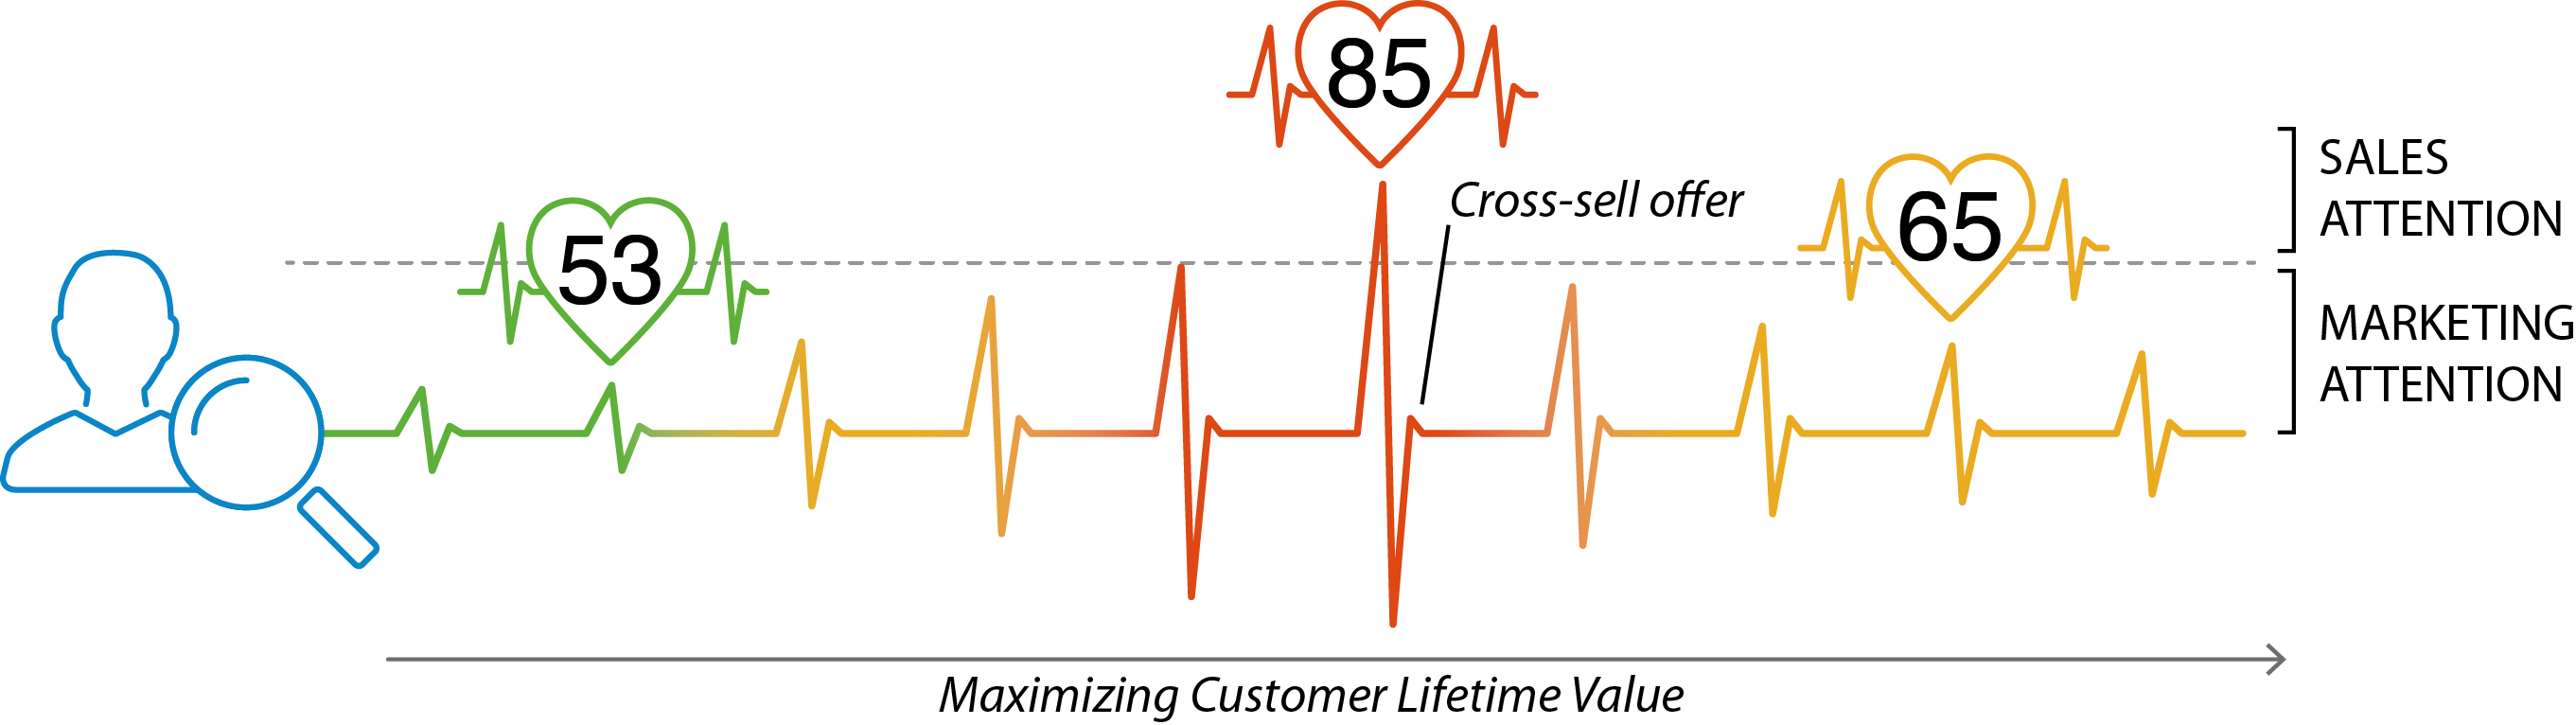 Visualization of Customer Lifetime Value as a pulse rate